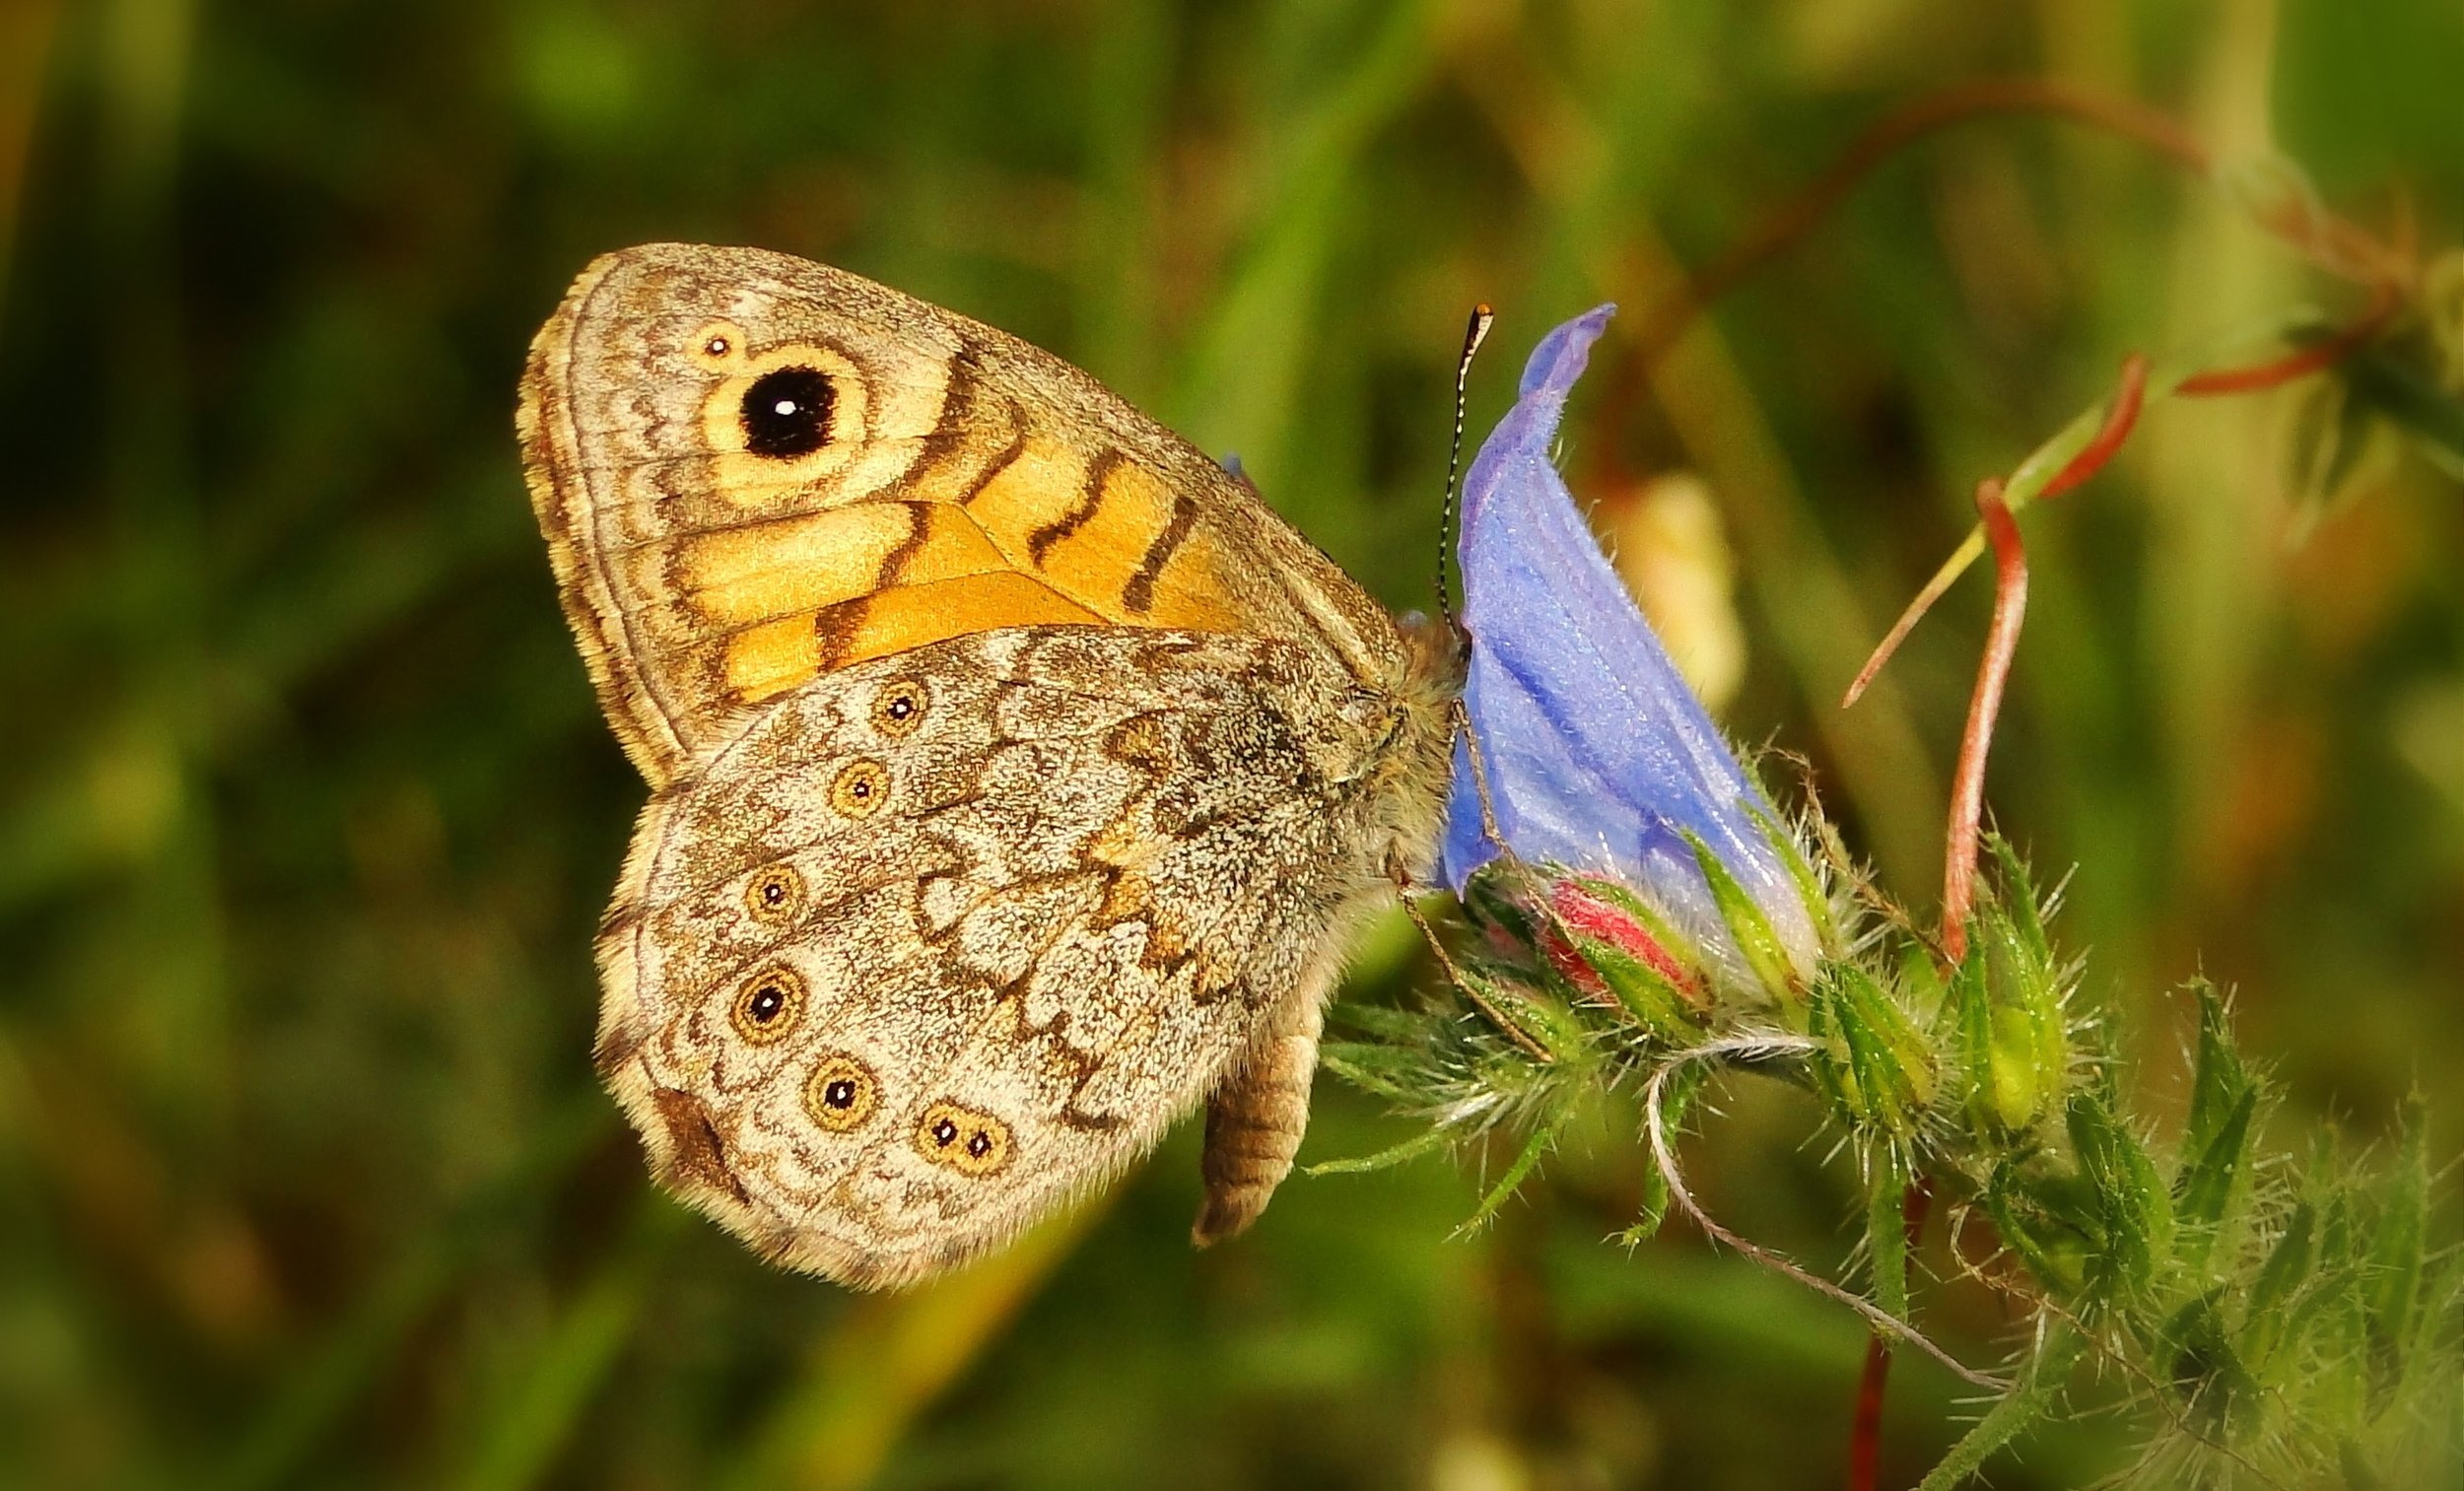 Butterfly with eye-like spot on its wing